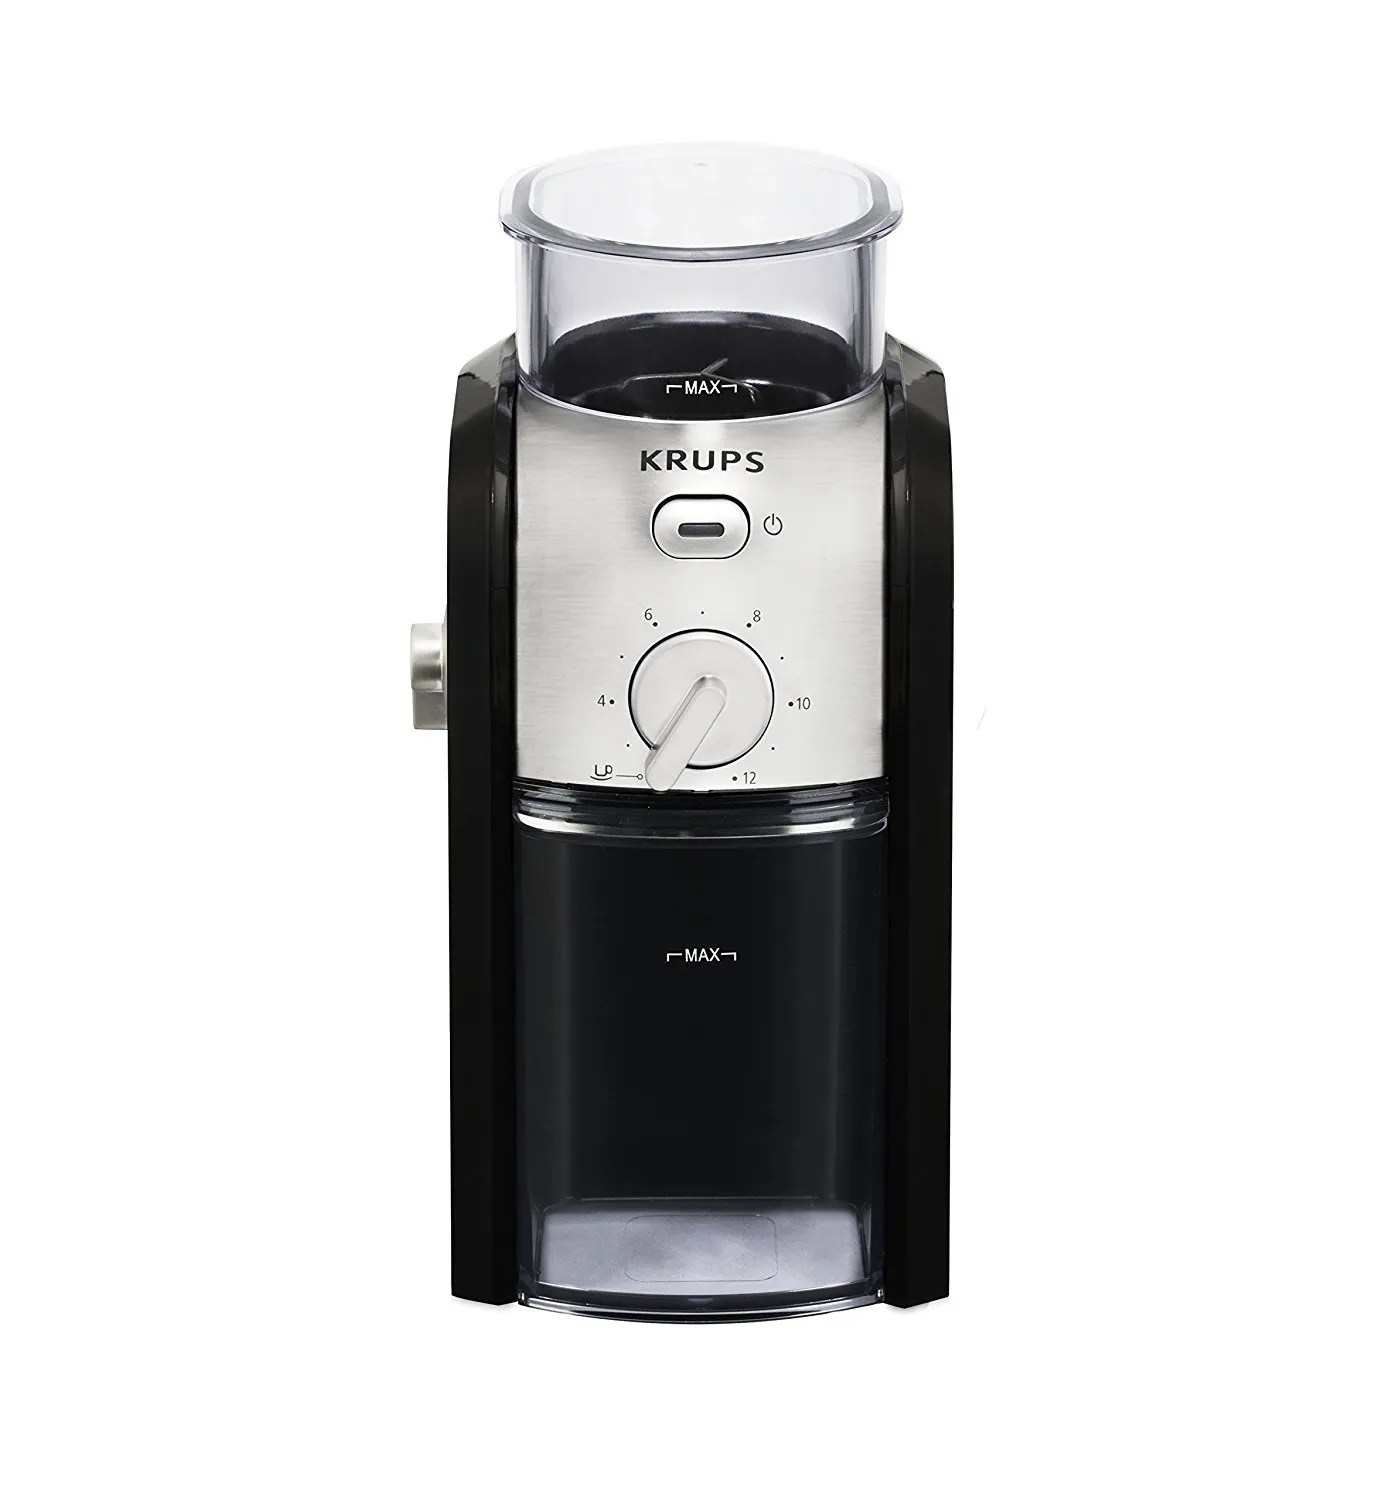 Best Burr Coffee Grinder Under 50 Uk Reviews 2019